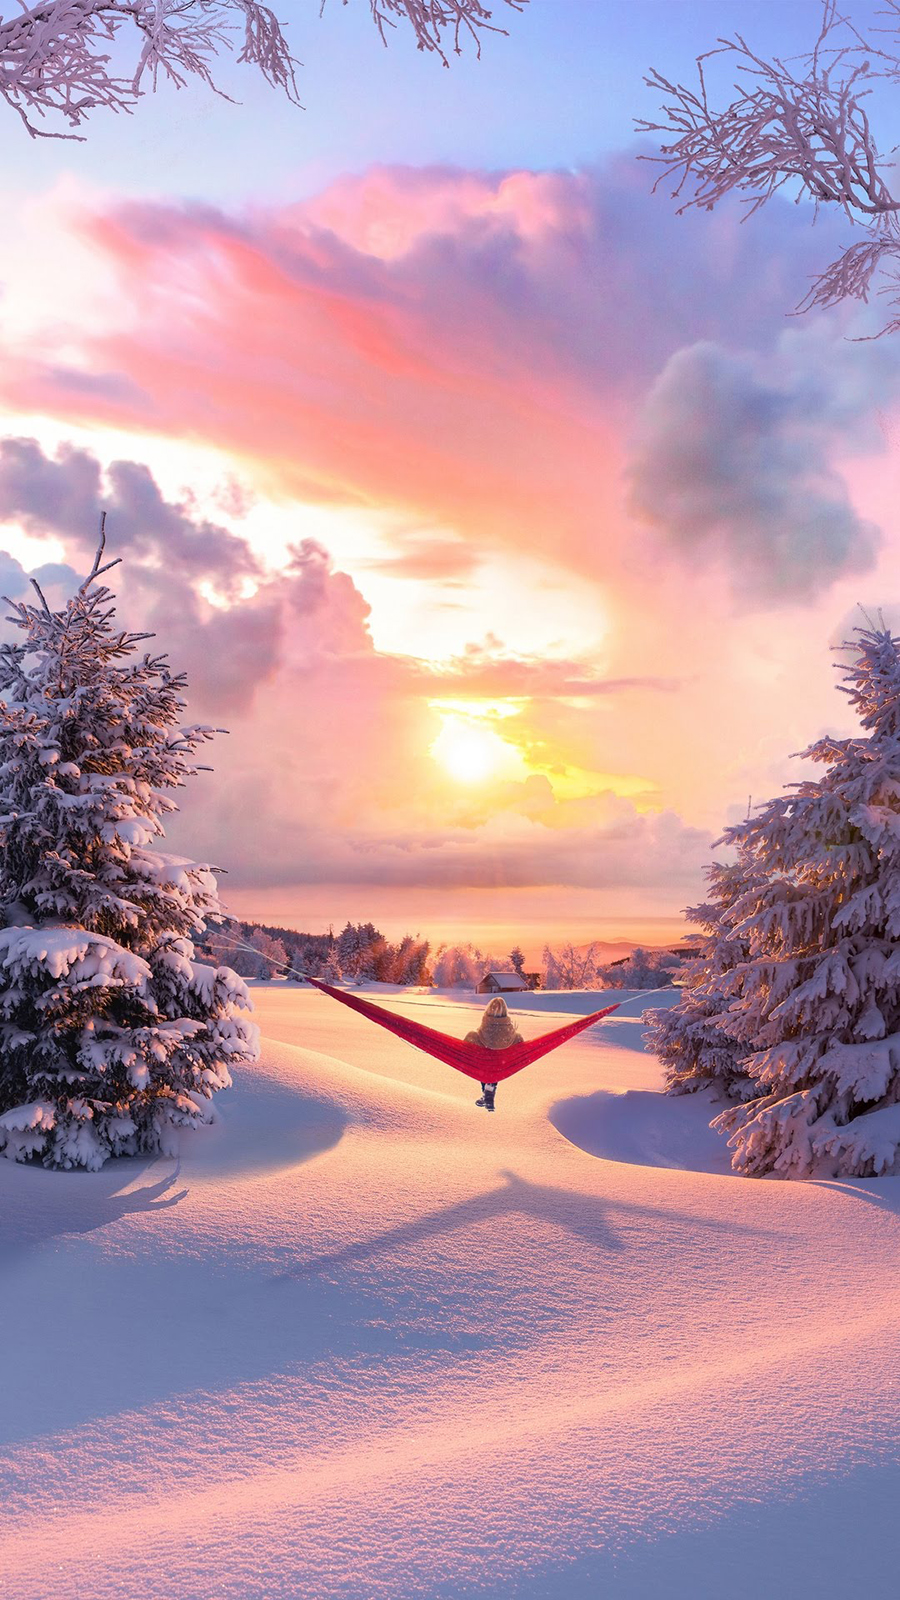 Sunset Winter Wallpapers Free Download